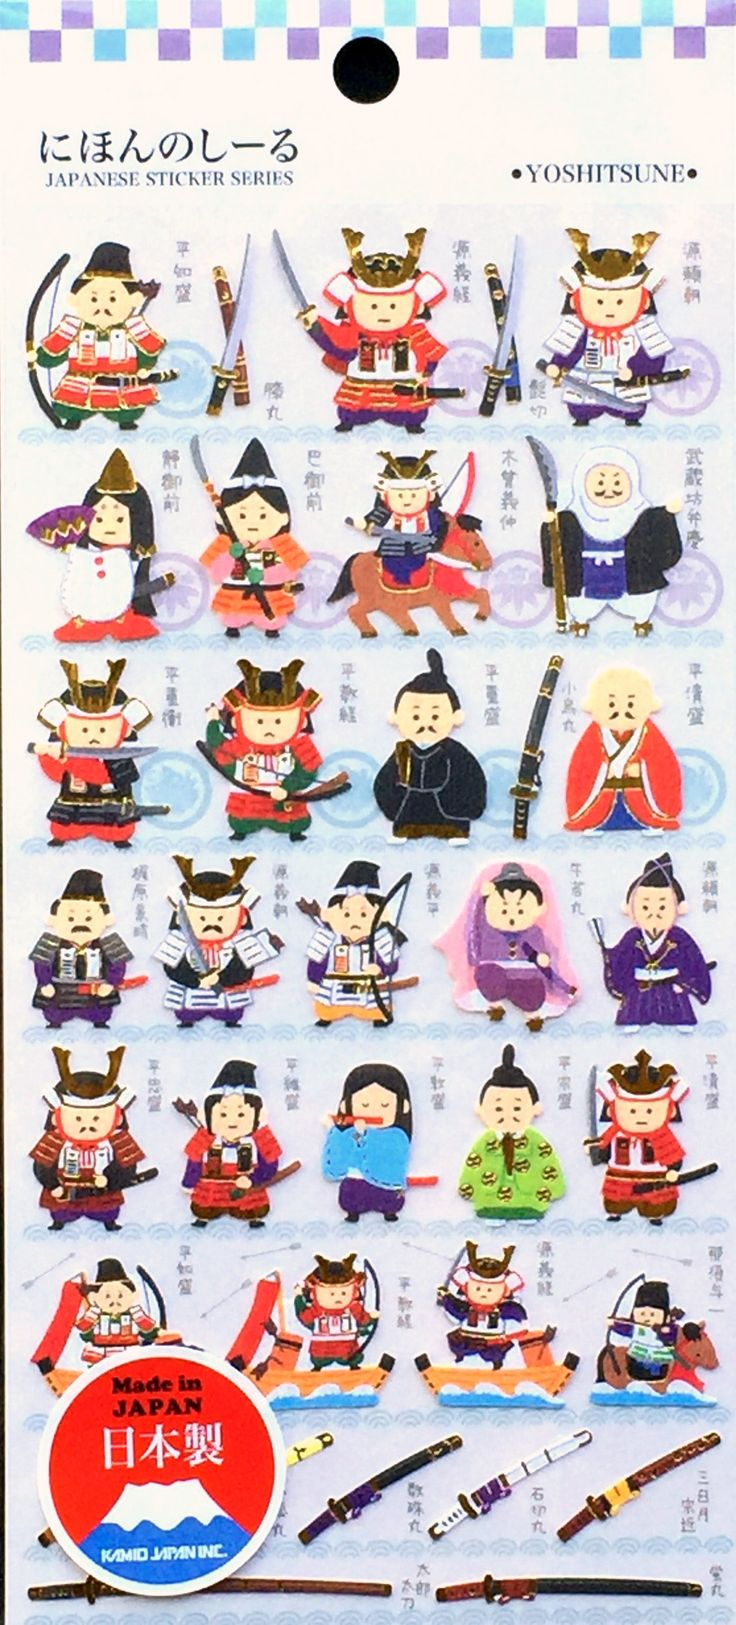 New in our shop! Japanese Stickers - Minamoto no Yoshitsune - Cute Famous People in History - Traditional Japane...  https://www.etsy.com/listing/530428803/japanese-stickers-minamoto-no-yoshitsune?utm_campaign=crowdfire&utm_content=crowdfire&utm_medium=social&utm_source=pinterest